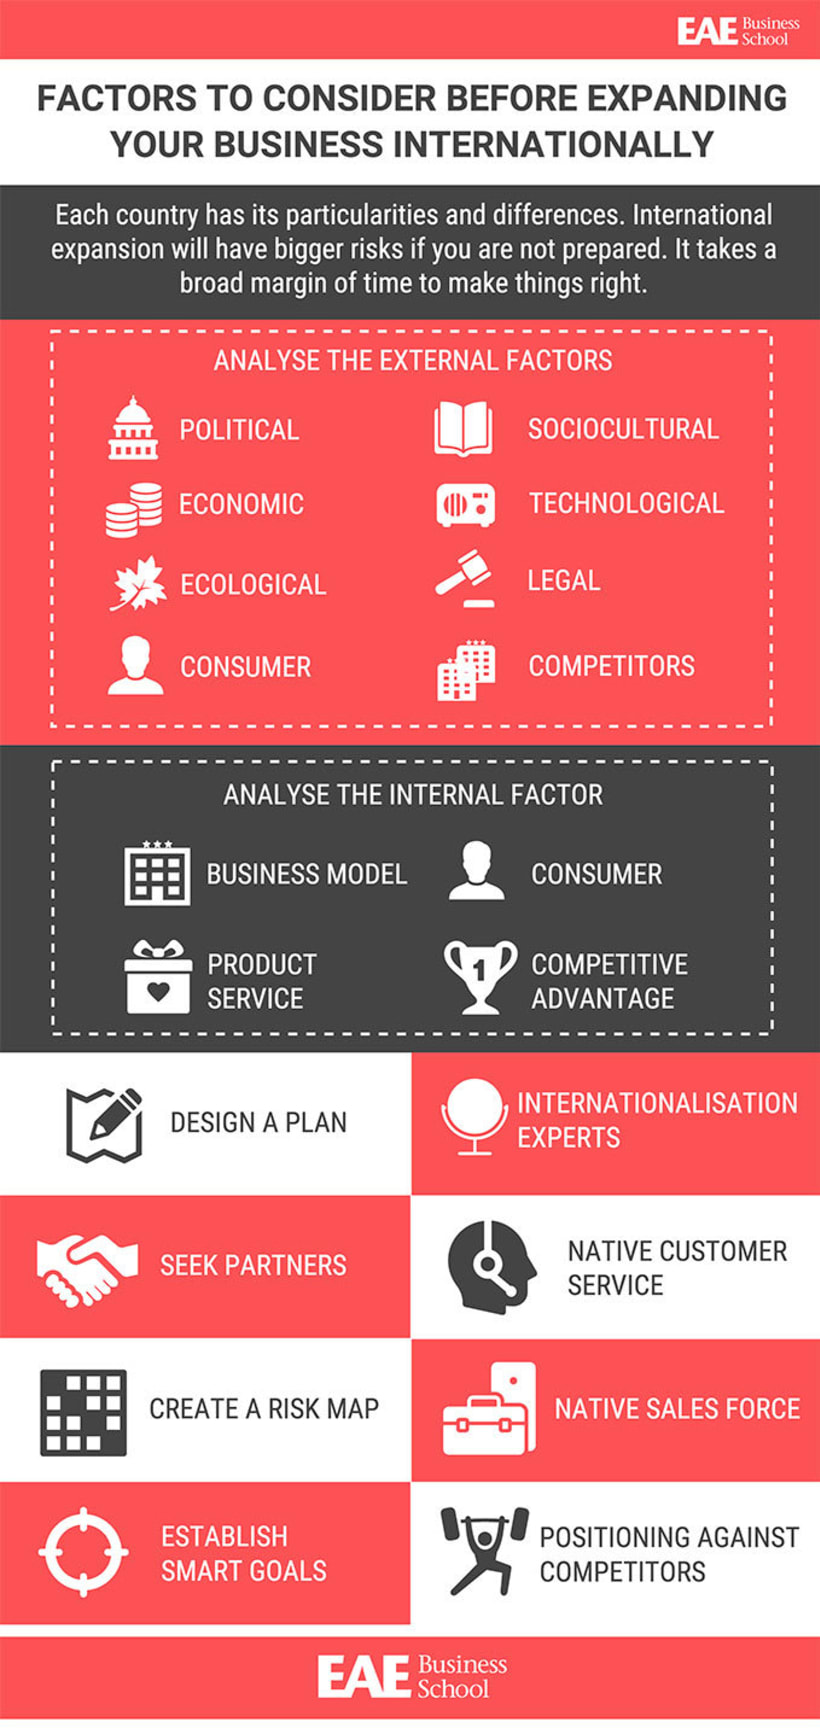 Factors to consider before expanding your business internationally 0